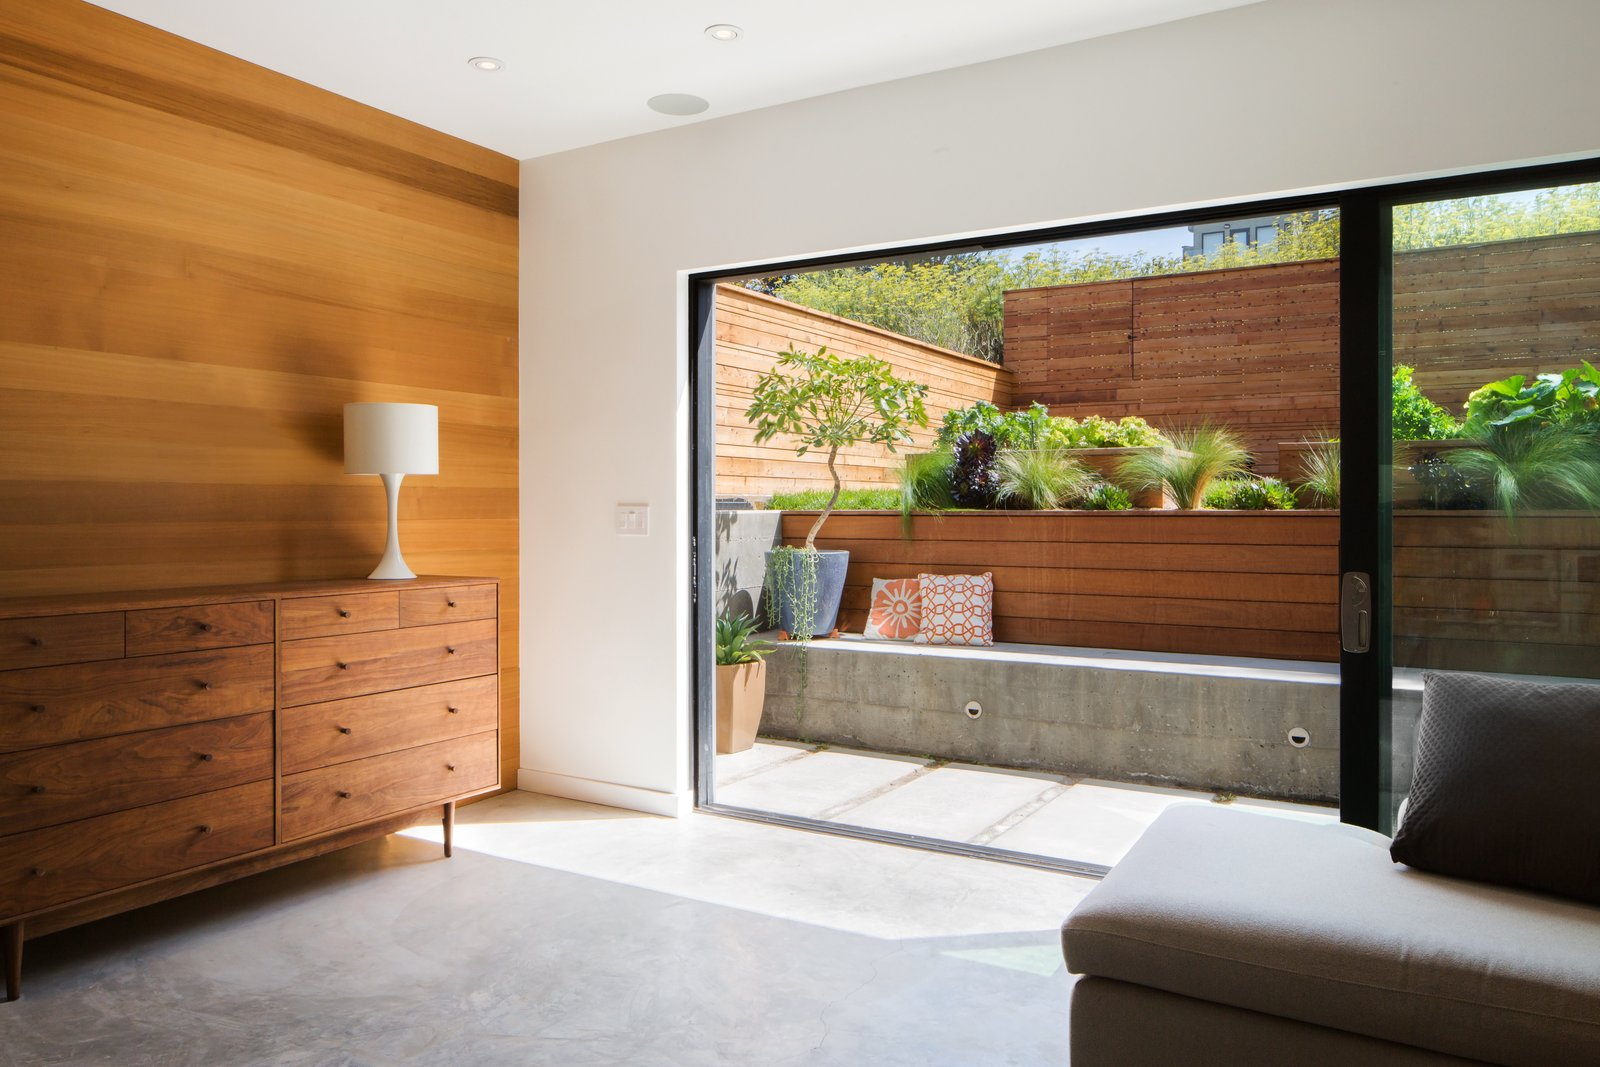 Office, Study Room Type, Storage, and Concrete Floor Den  27th Street - Noe Valley by patrick perez/designpad architecture